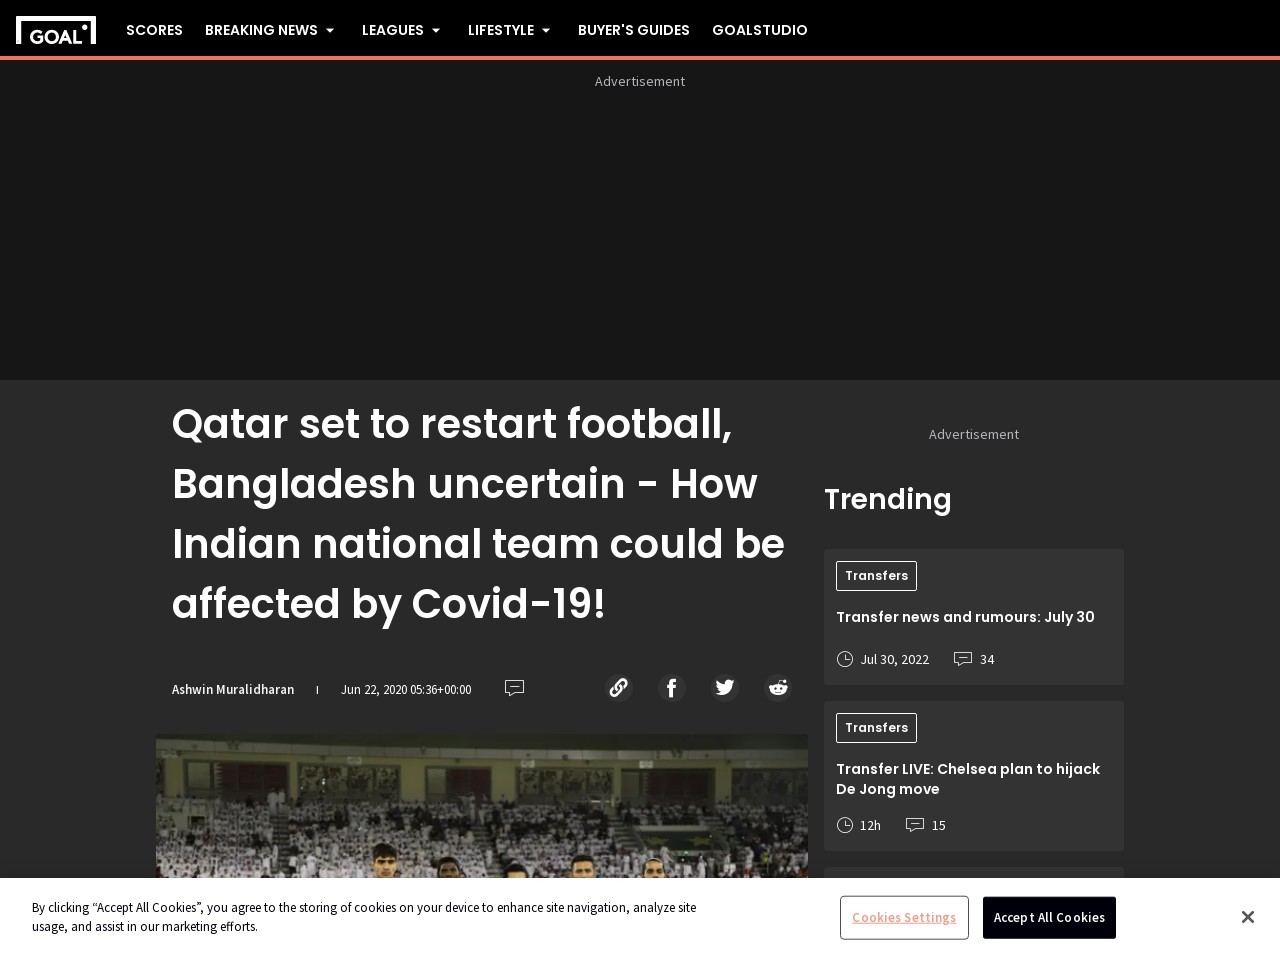 Qatar set to restart football, Bangladesh uncertain – How Indian national team could be affected by…